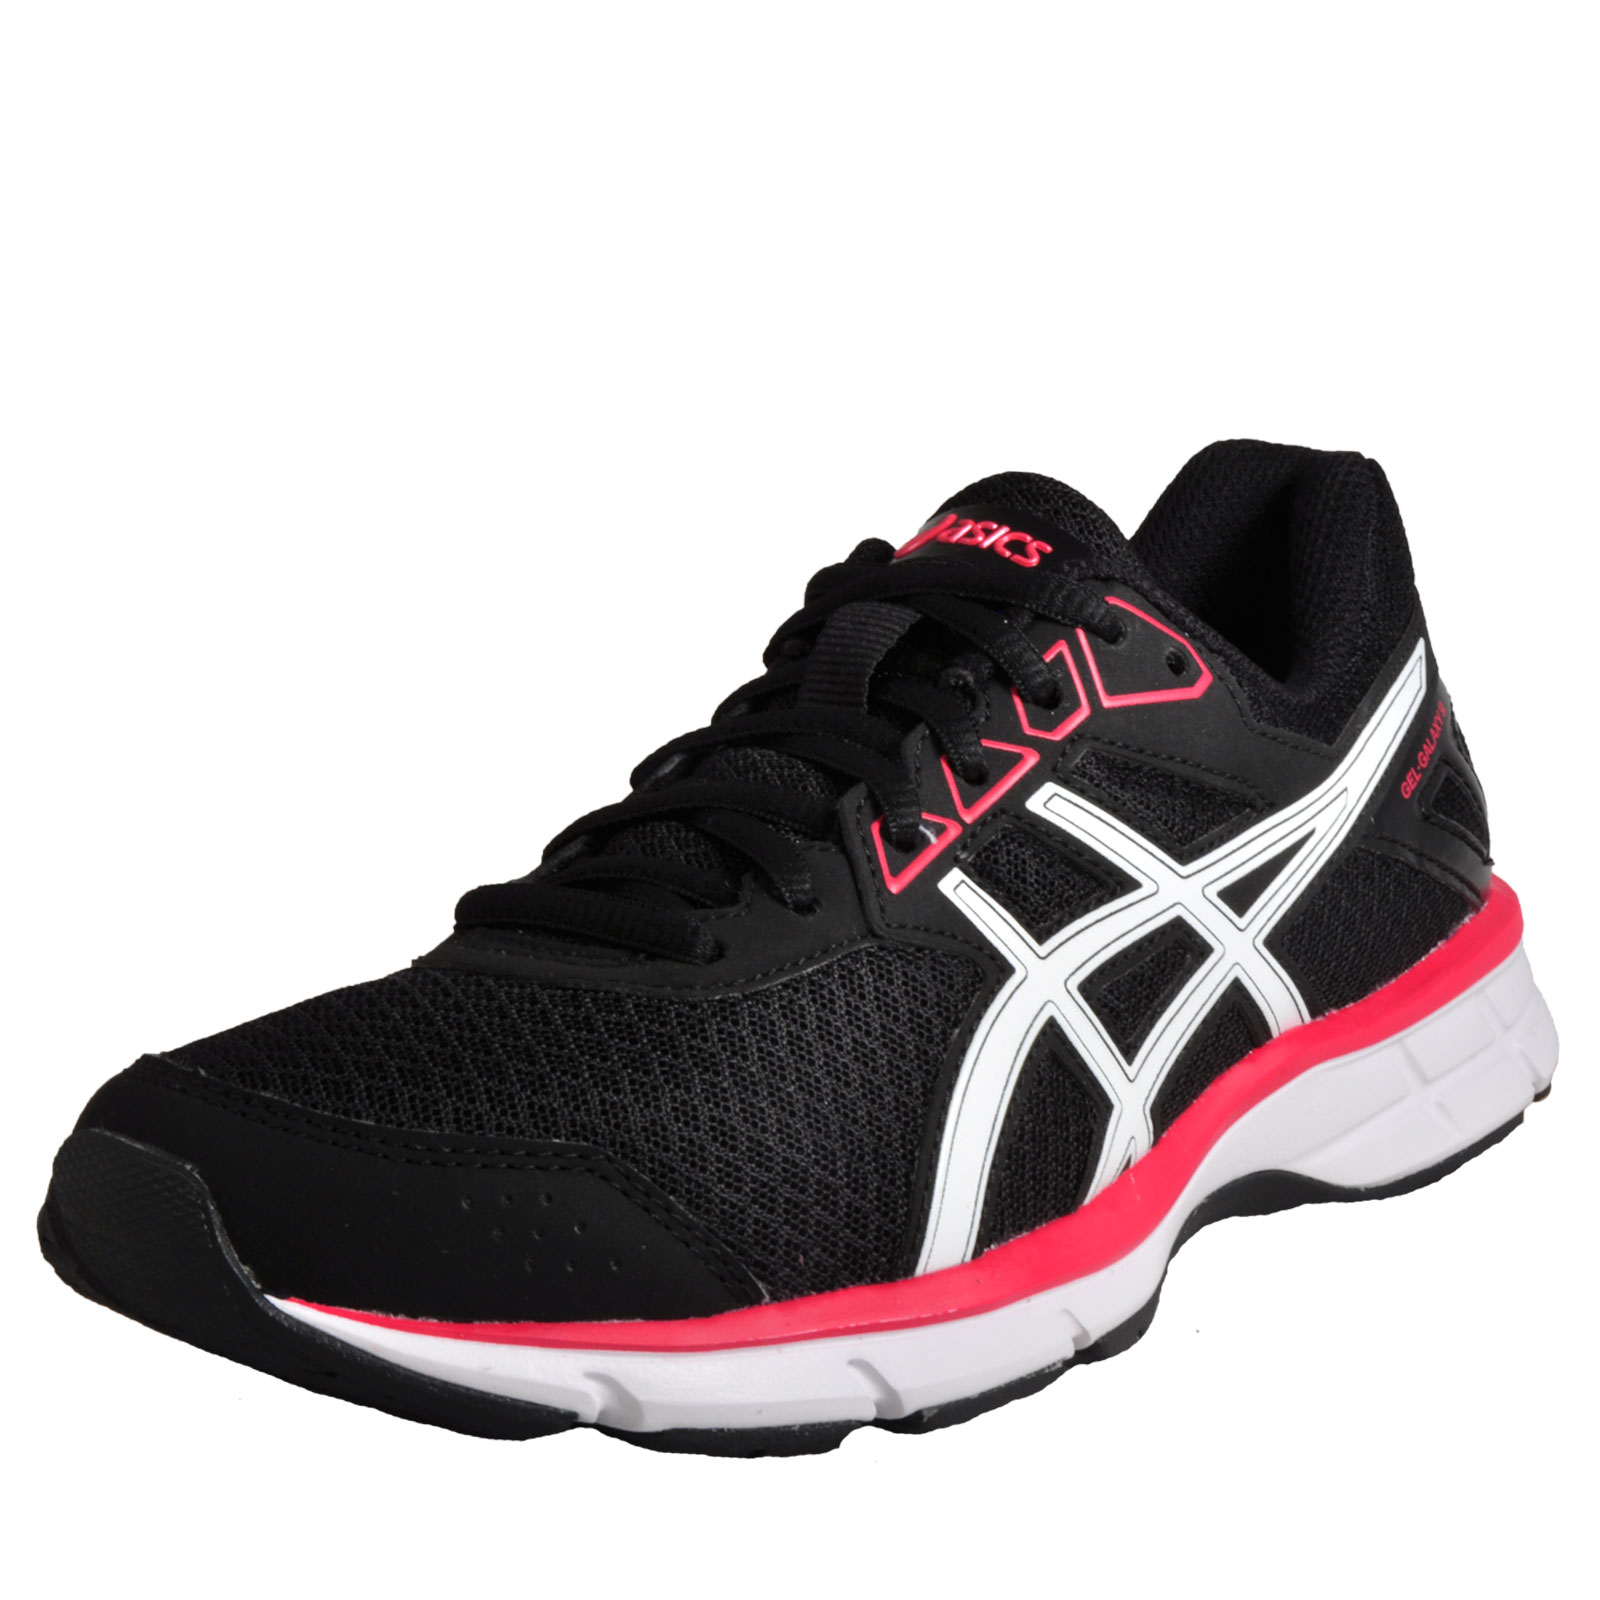 Asics Gel Galaxy 9 Women's Running Shoes Gym Fitness Trainers Black